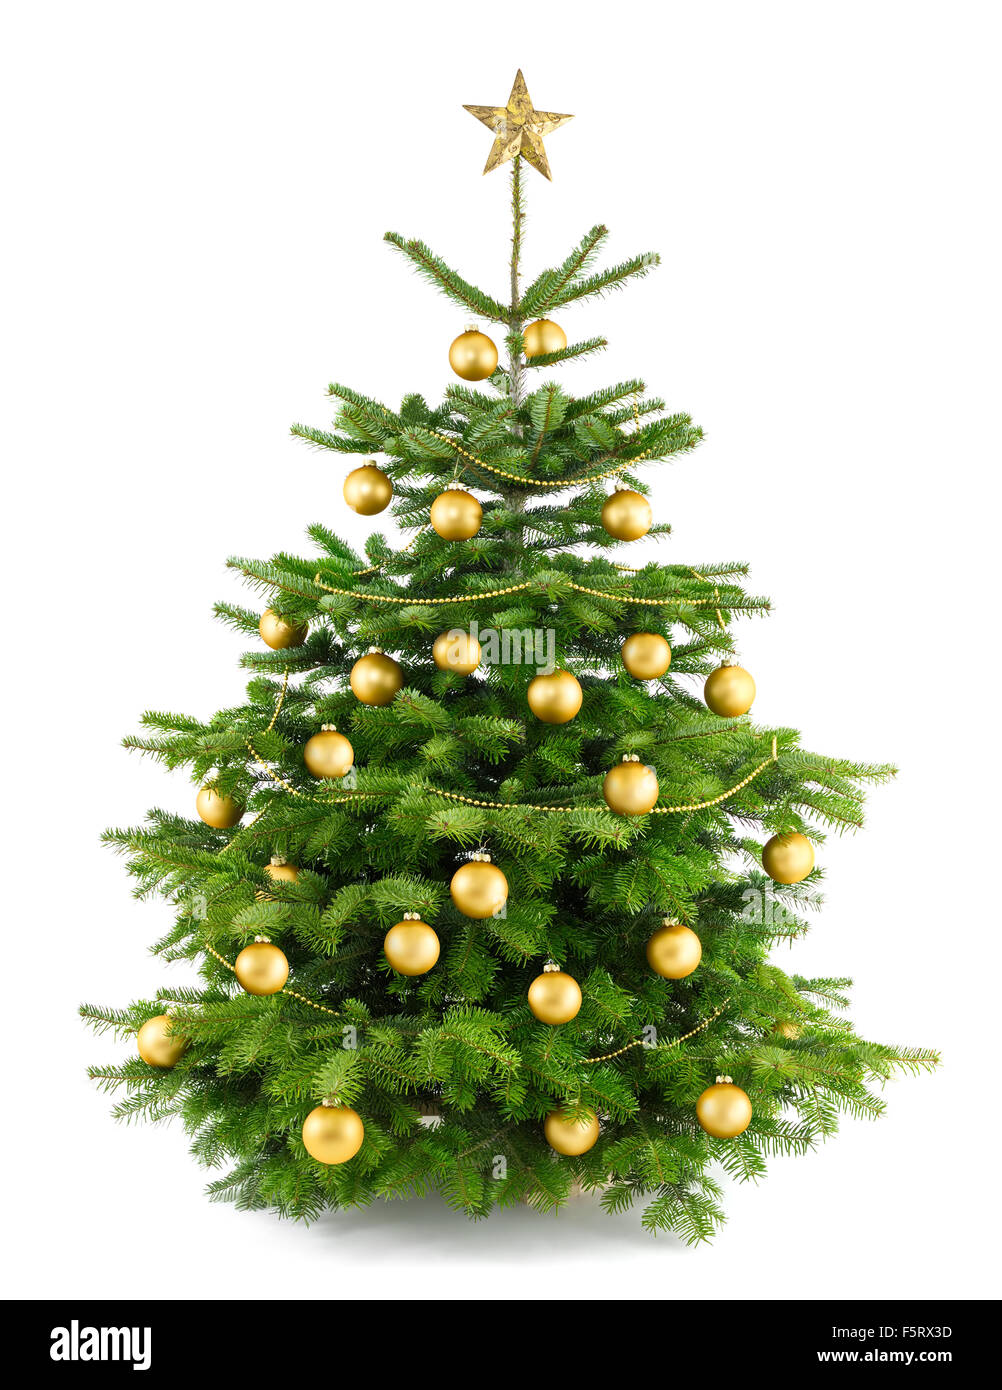 Elegant studio shot of a Christmas tree with gold ornaments, isolated on white - Stock Image